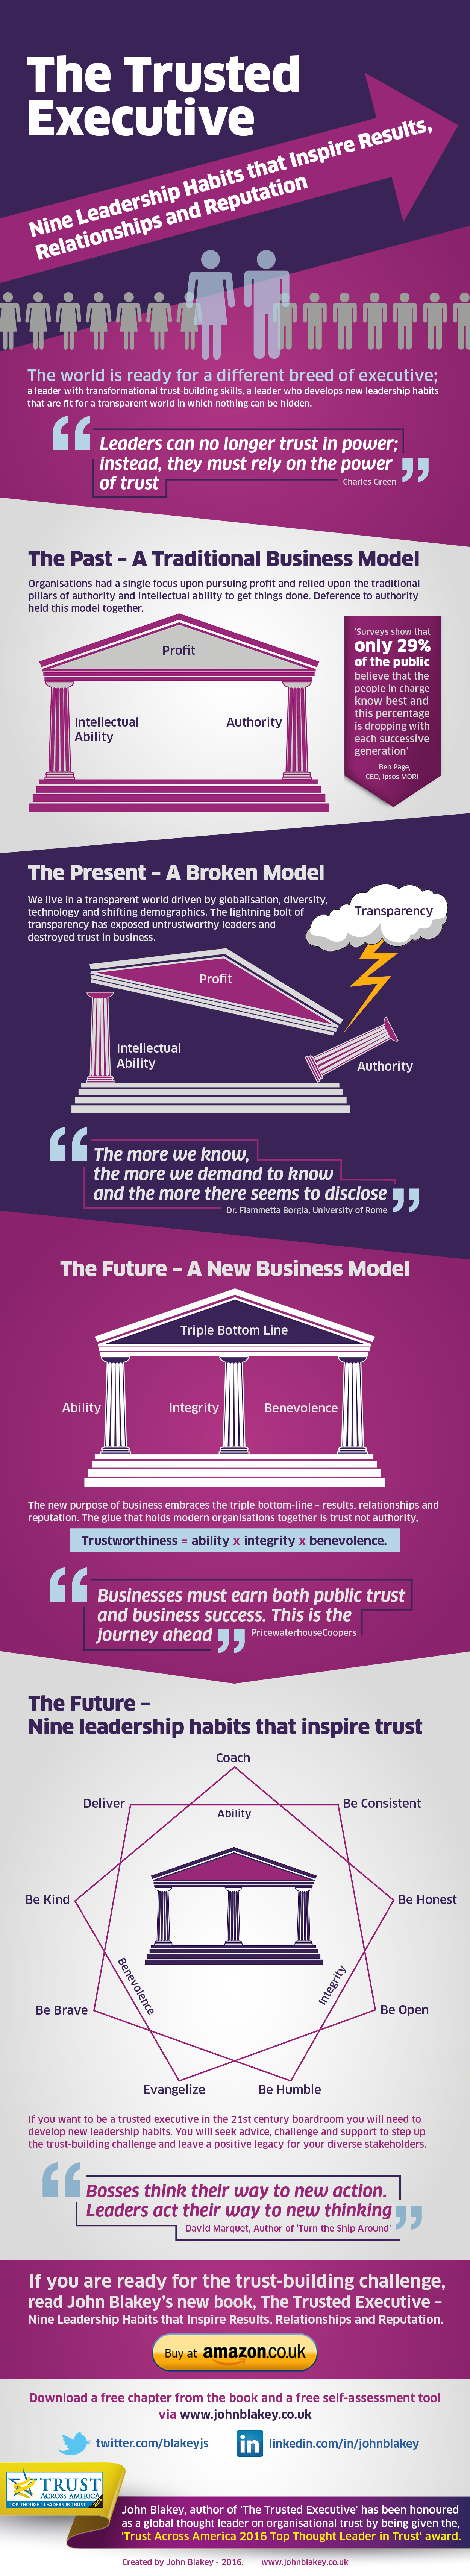 The Trusted Executive Infographic